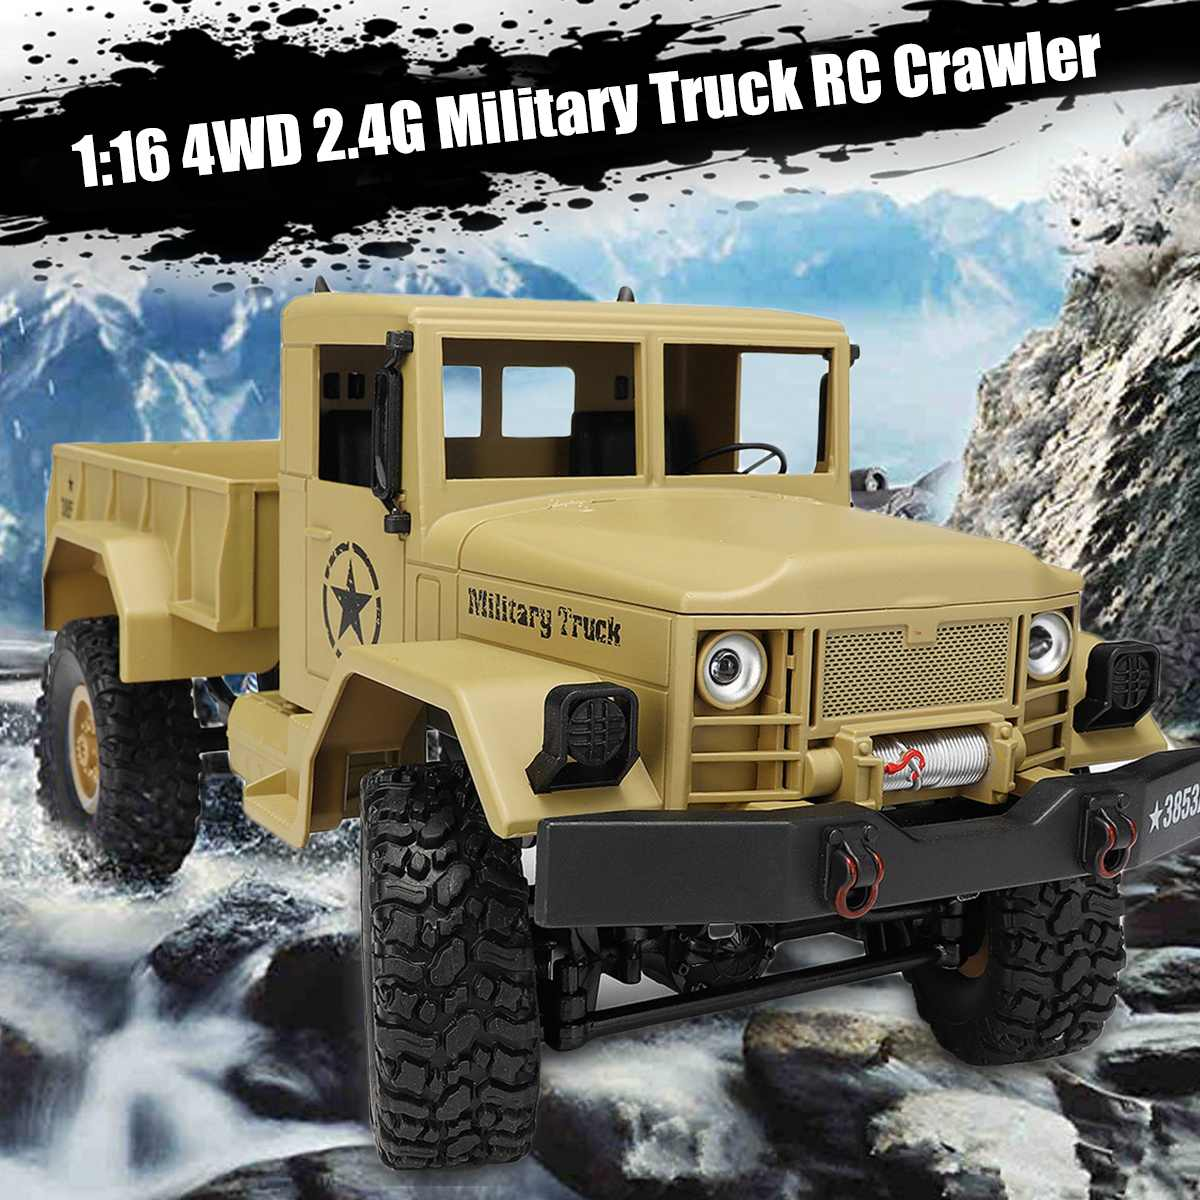 1:16 2.4G 4WD 10km/h RC Crawler Military Truck Off Road Rock Car RTR Remote Control Toy Power-efficient Colors LED Headlight1:16 2.4G 4WD 10km/h RC Crawler Military Truck Off Road Rock Car RTR Remote Control Toy Power-efficient Colors LED Headlight